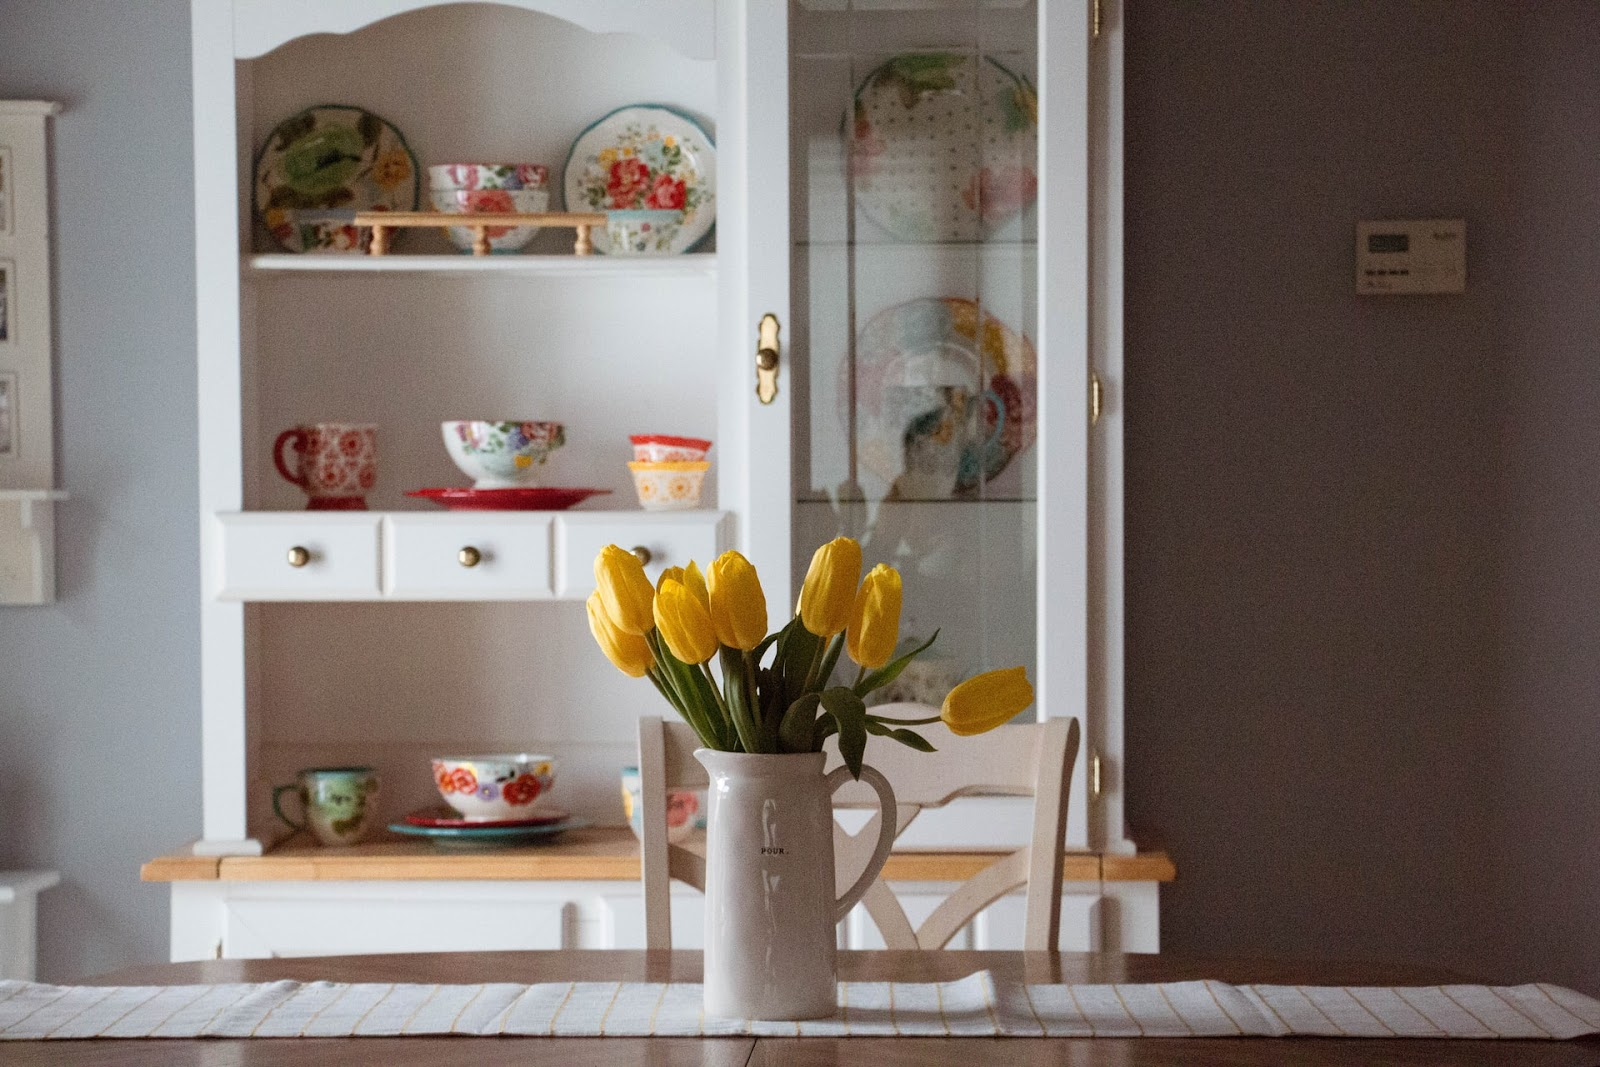 A vase full of fresh yellow tulips being used as a centrepiece on the table representing how you can integrate natural elements in your kitchen